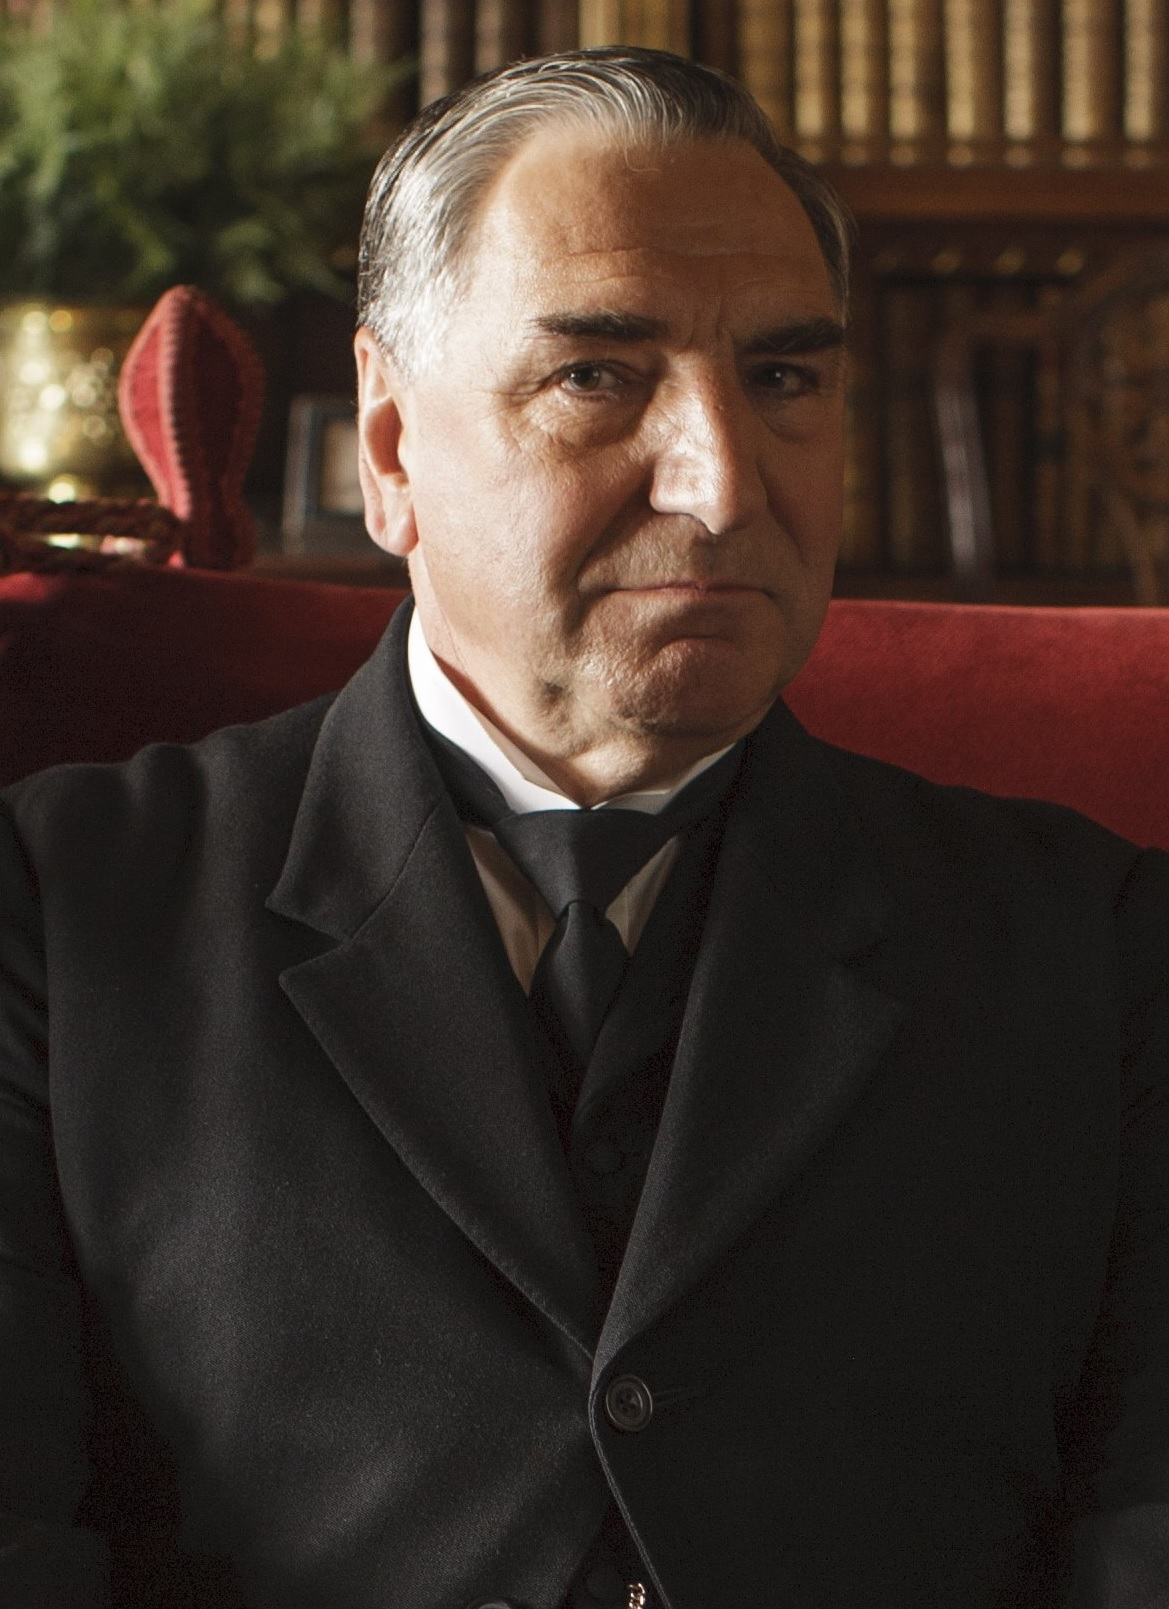 Sex scandals secrets love dating advice downton abbey